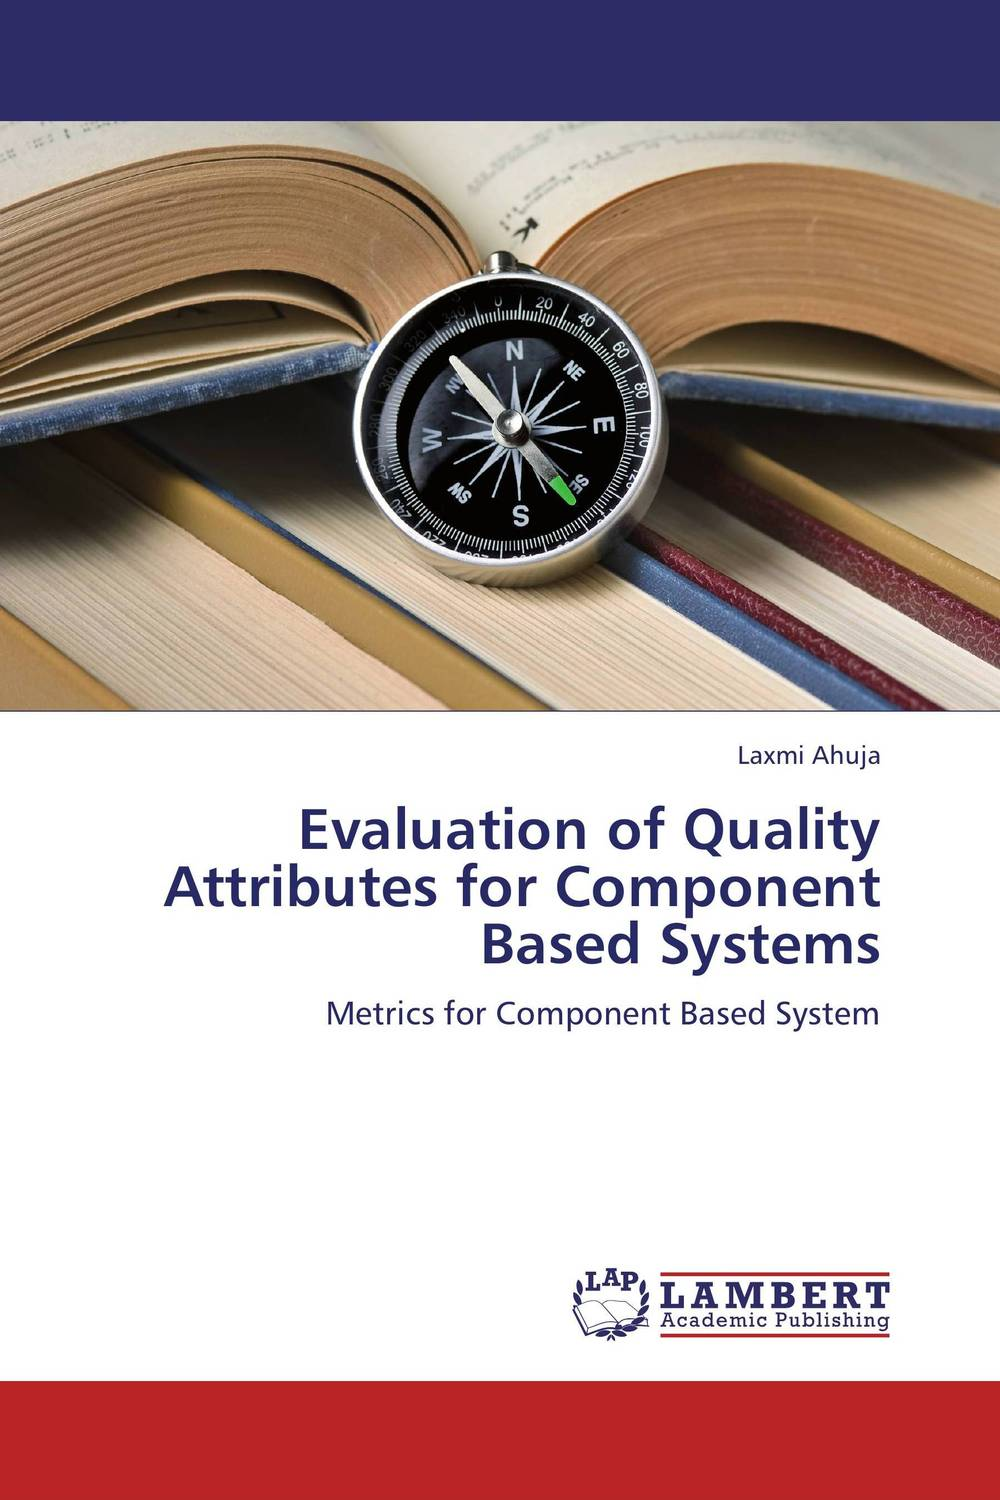 Evaluation of Quality Attributes for Component Based Systems prasanta kumar hota and anil kumar singh synthetic photoresponsive systems